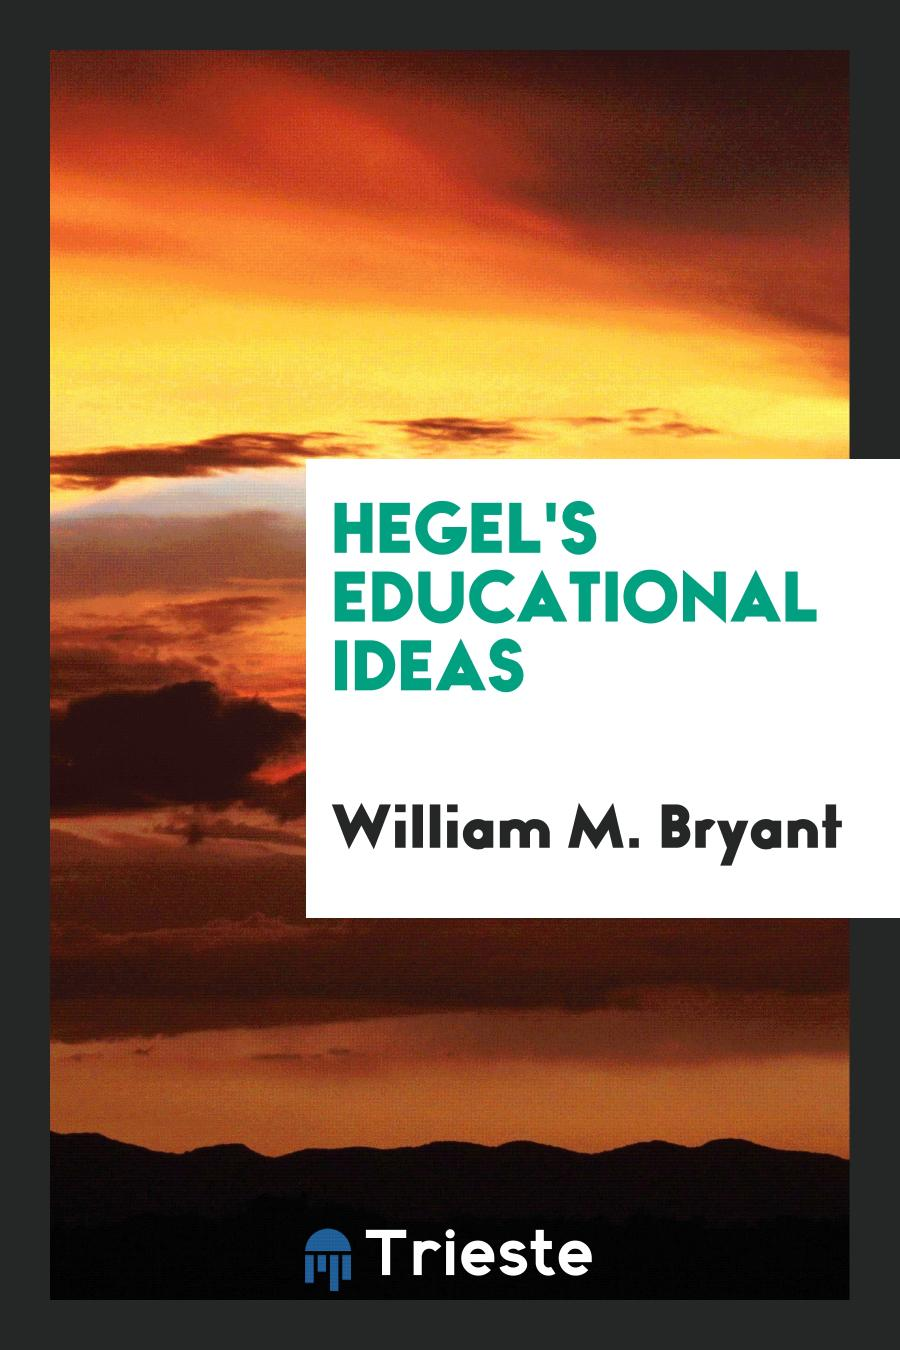 Hegel's Educational Ideas